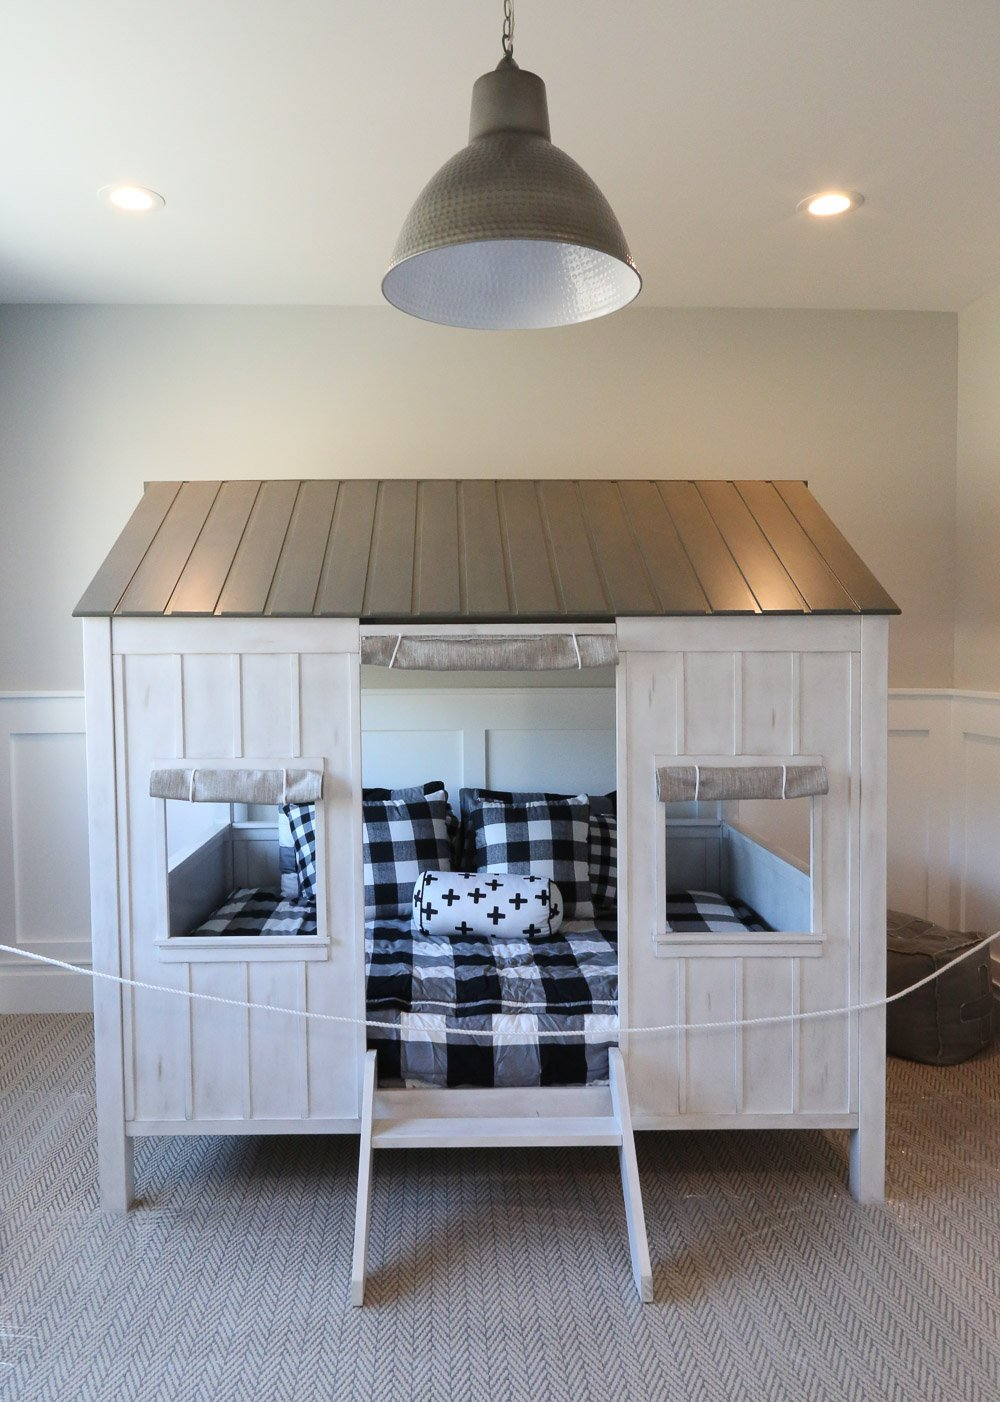 Enclosed bed as house